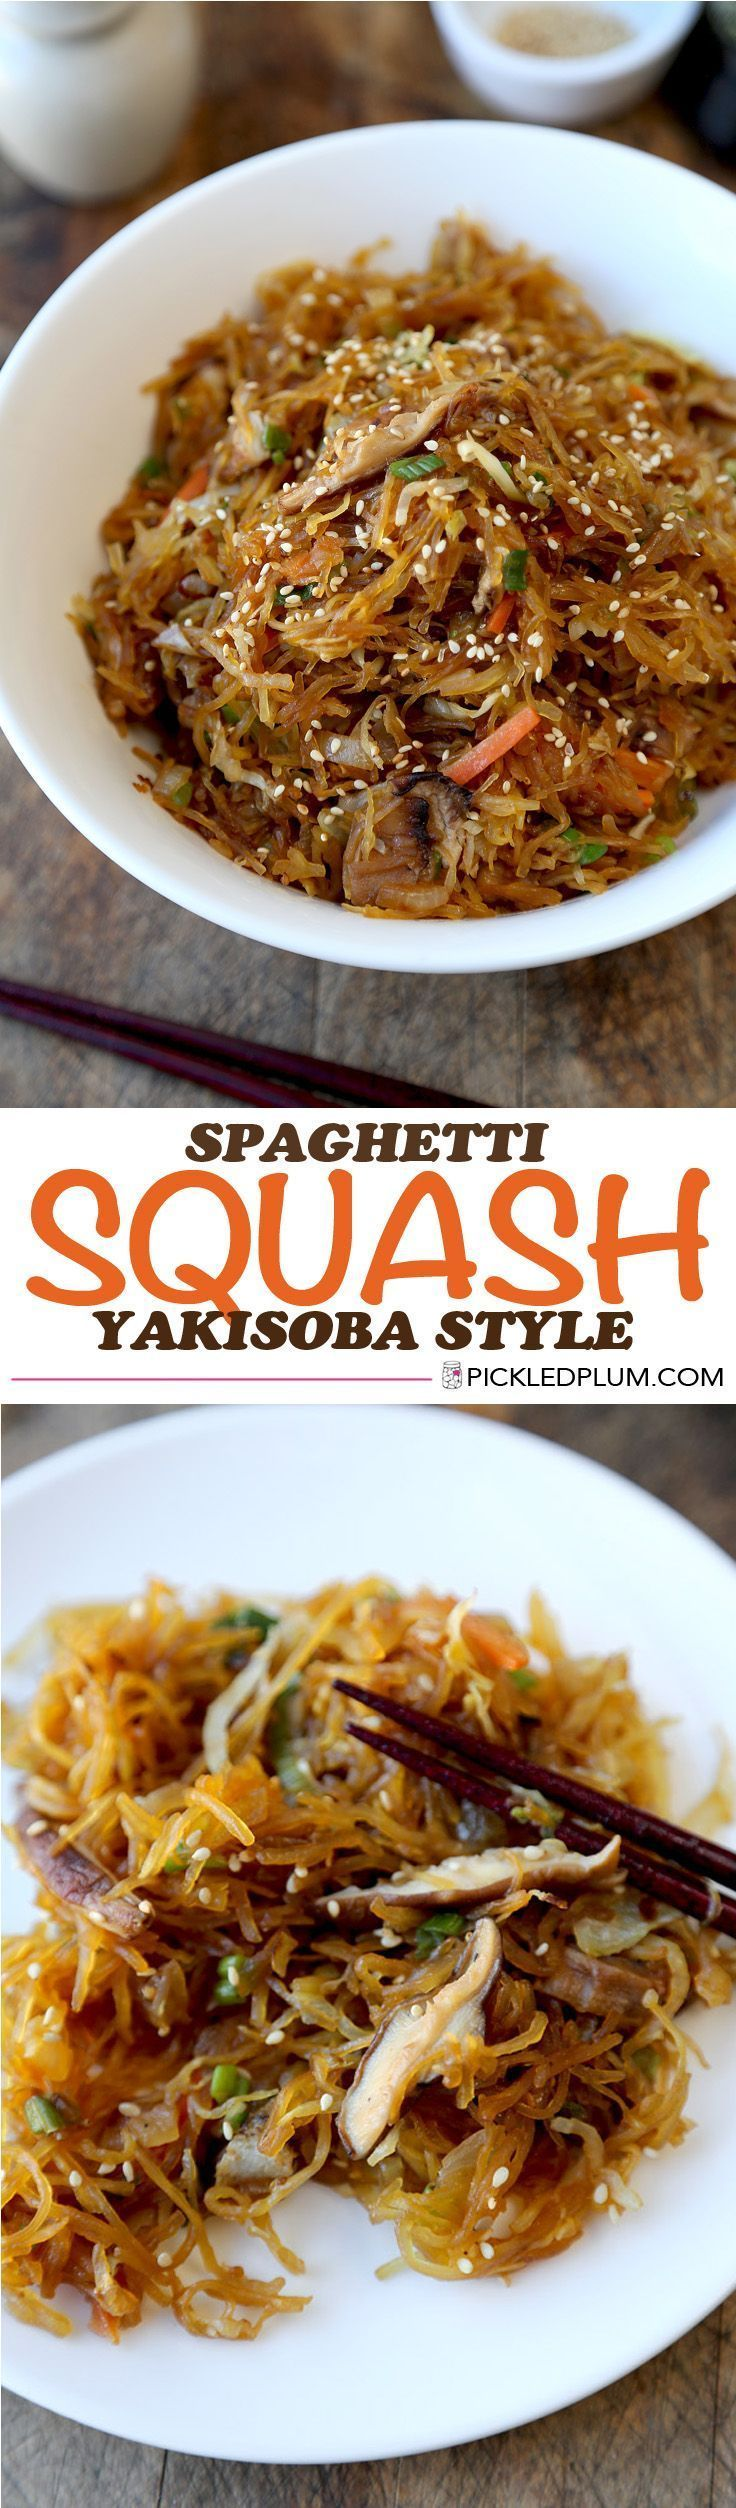 Spaghetti Squash Yakisoba Style - This is a healthy and yummy substitute for carbs. A quick and easy traditional yakisoba recipe made with spaghetti squash for a healthier alternative. Recipe, main, healthy, vegetarian, dinner | pickledplum.com